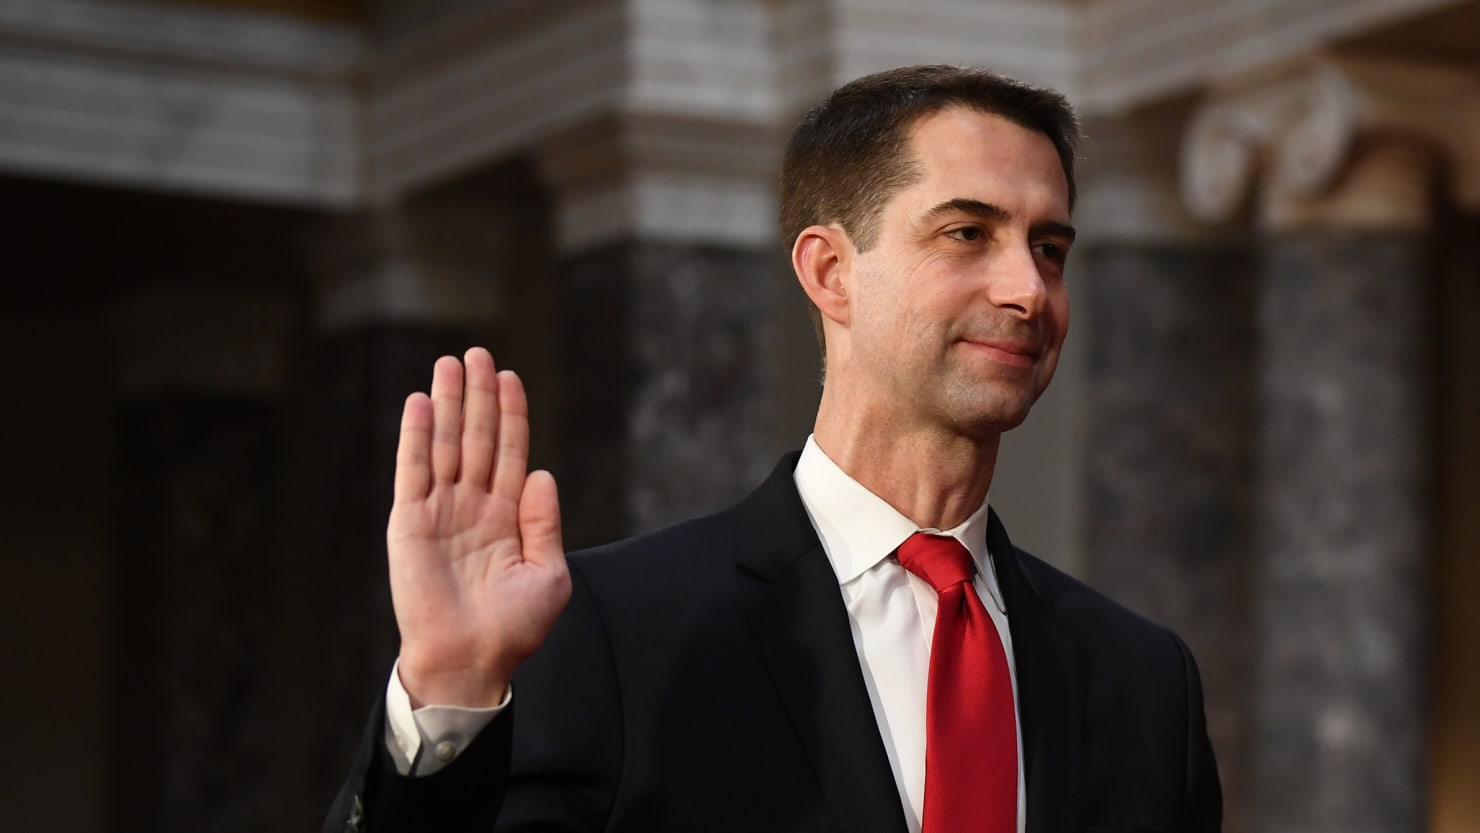 Sen. Cotton Inflated His Military Accomplishments During Senate Campaign